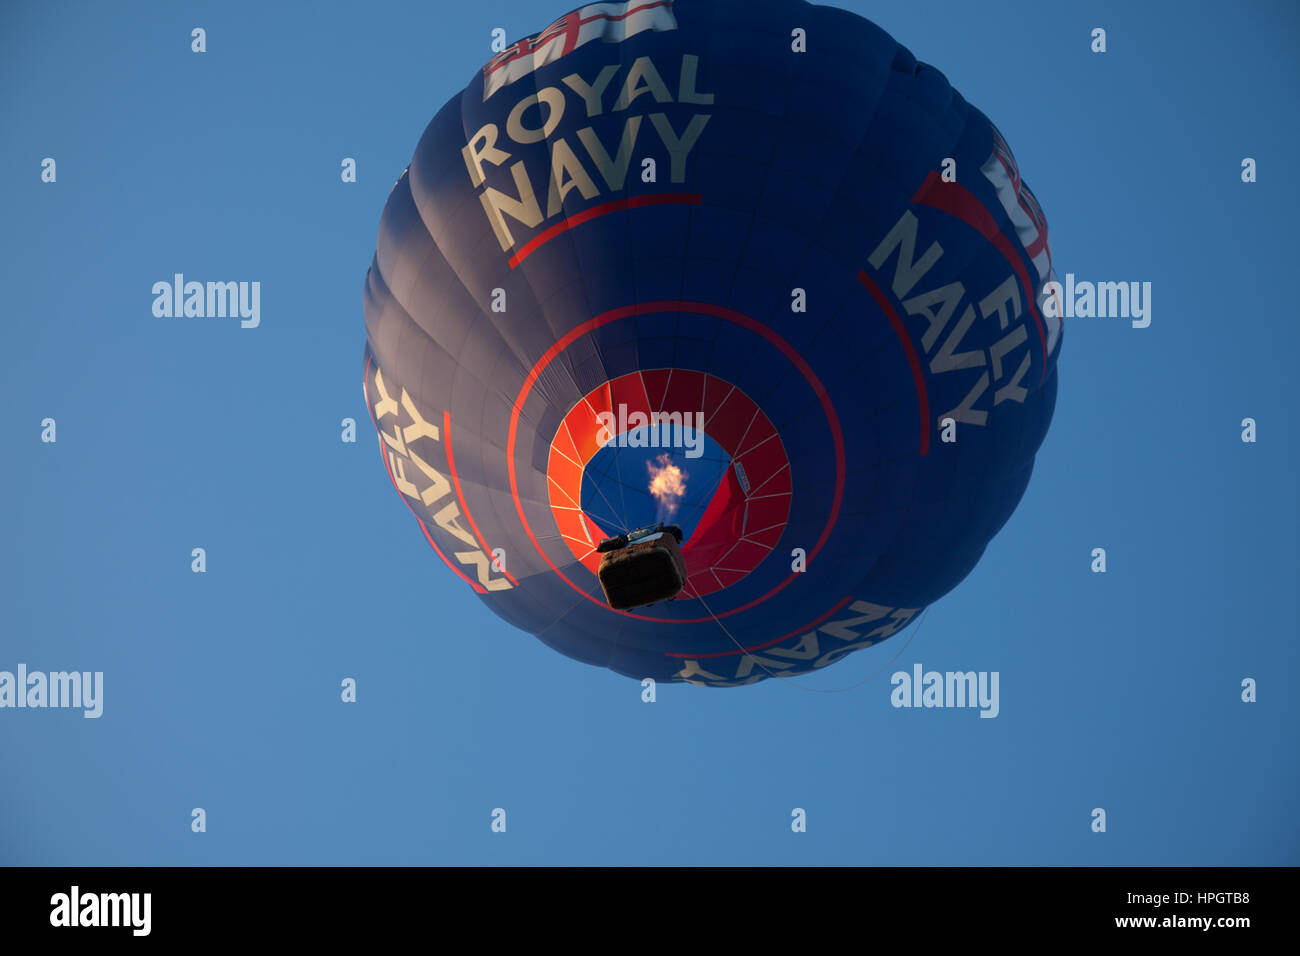 A hot air balloon from below showing the Royal Navy logo - Stock Image